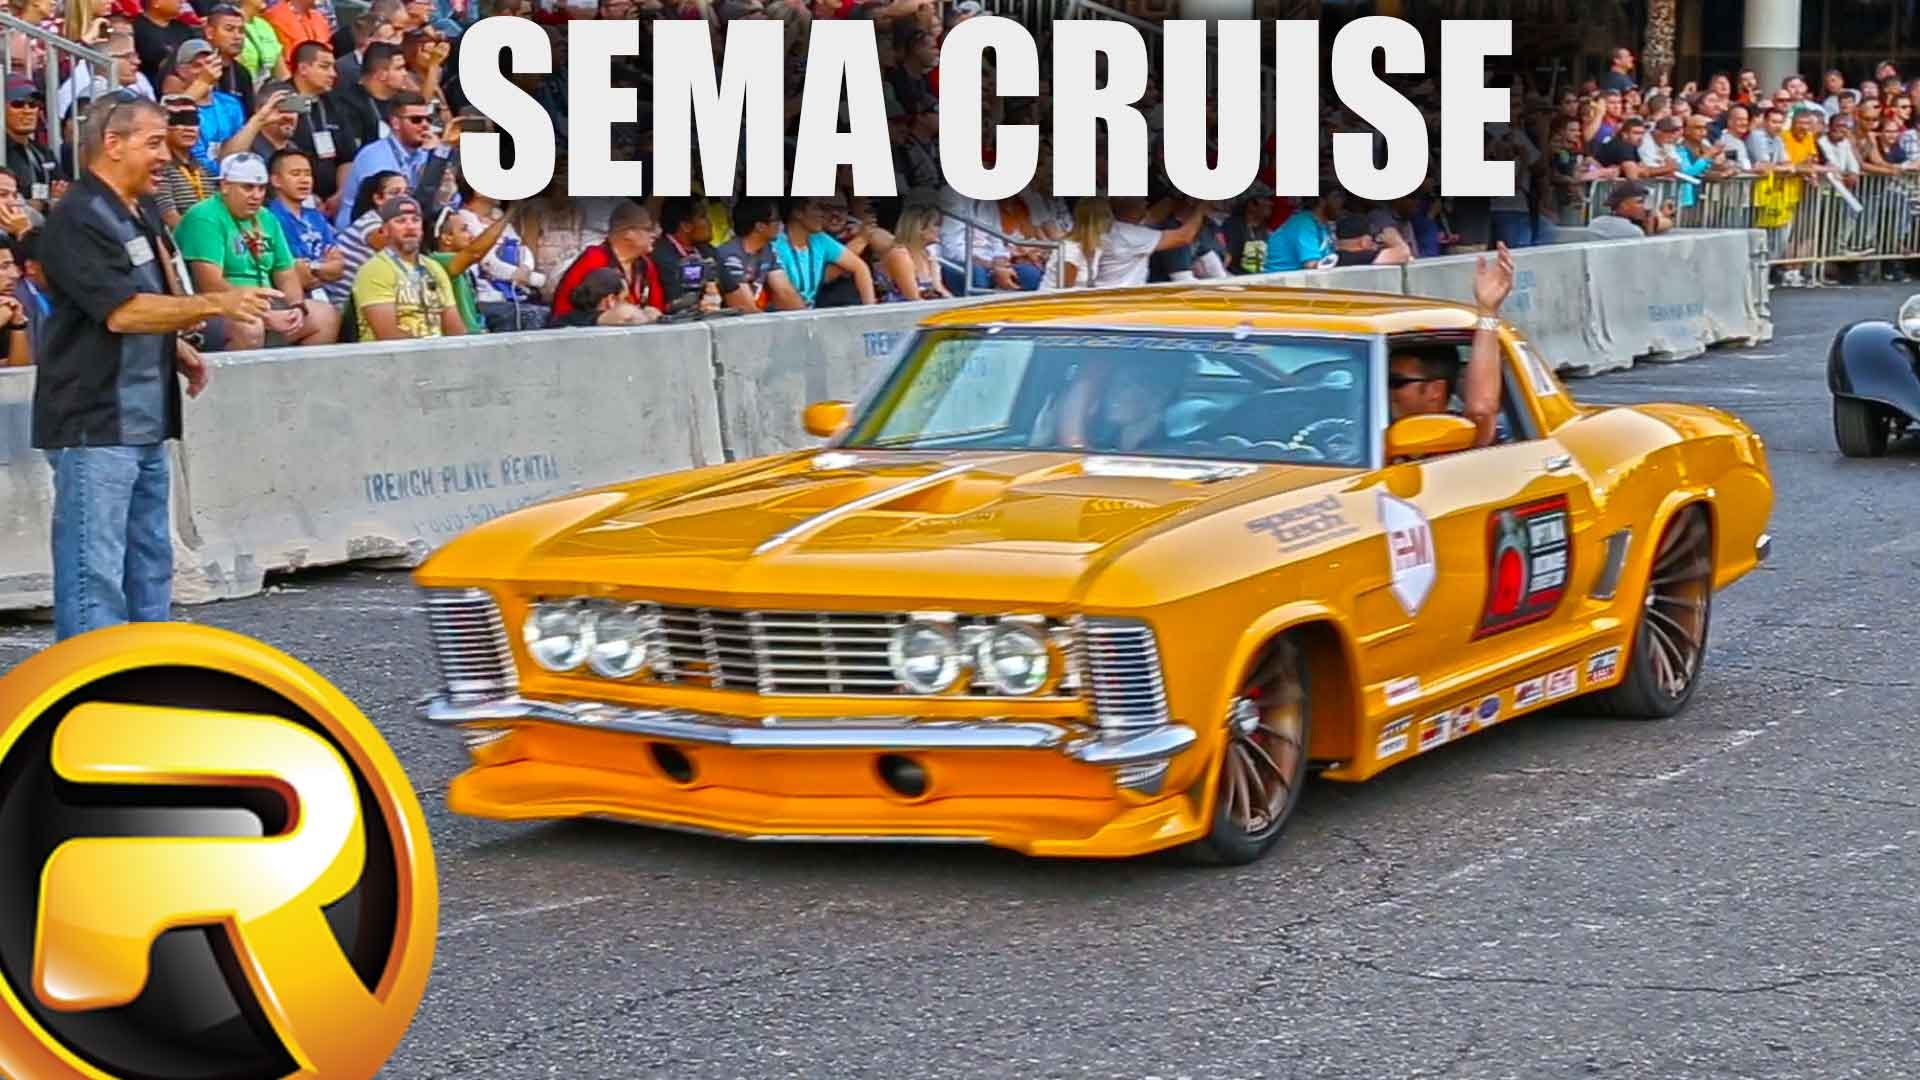 Muscle Cars Archives - Page 58 of 76 - LegendaryFinds